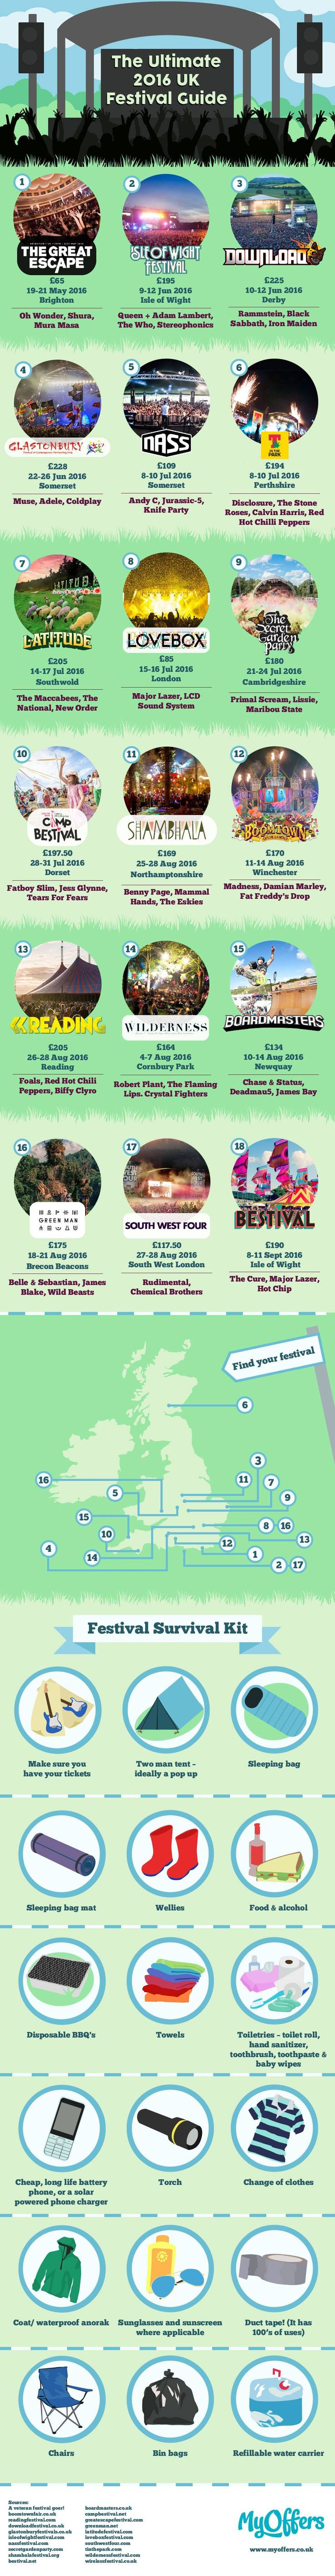 The Ultimate 2016 UK Festival Guide #Infographic #Festival #Music #UK